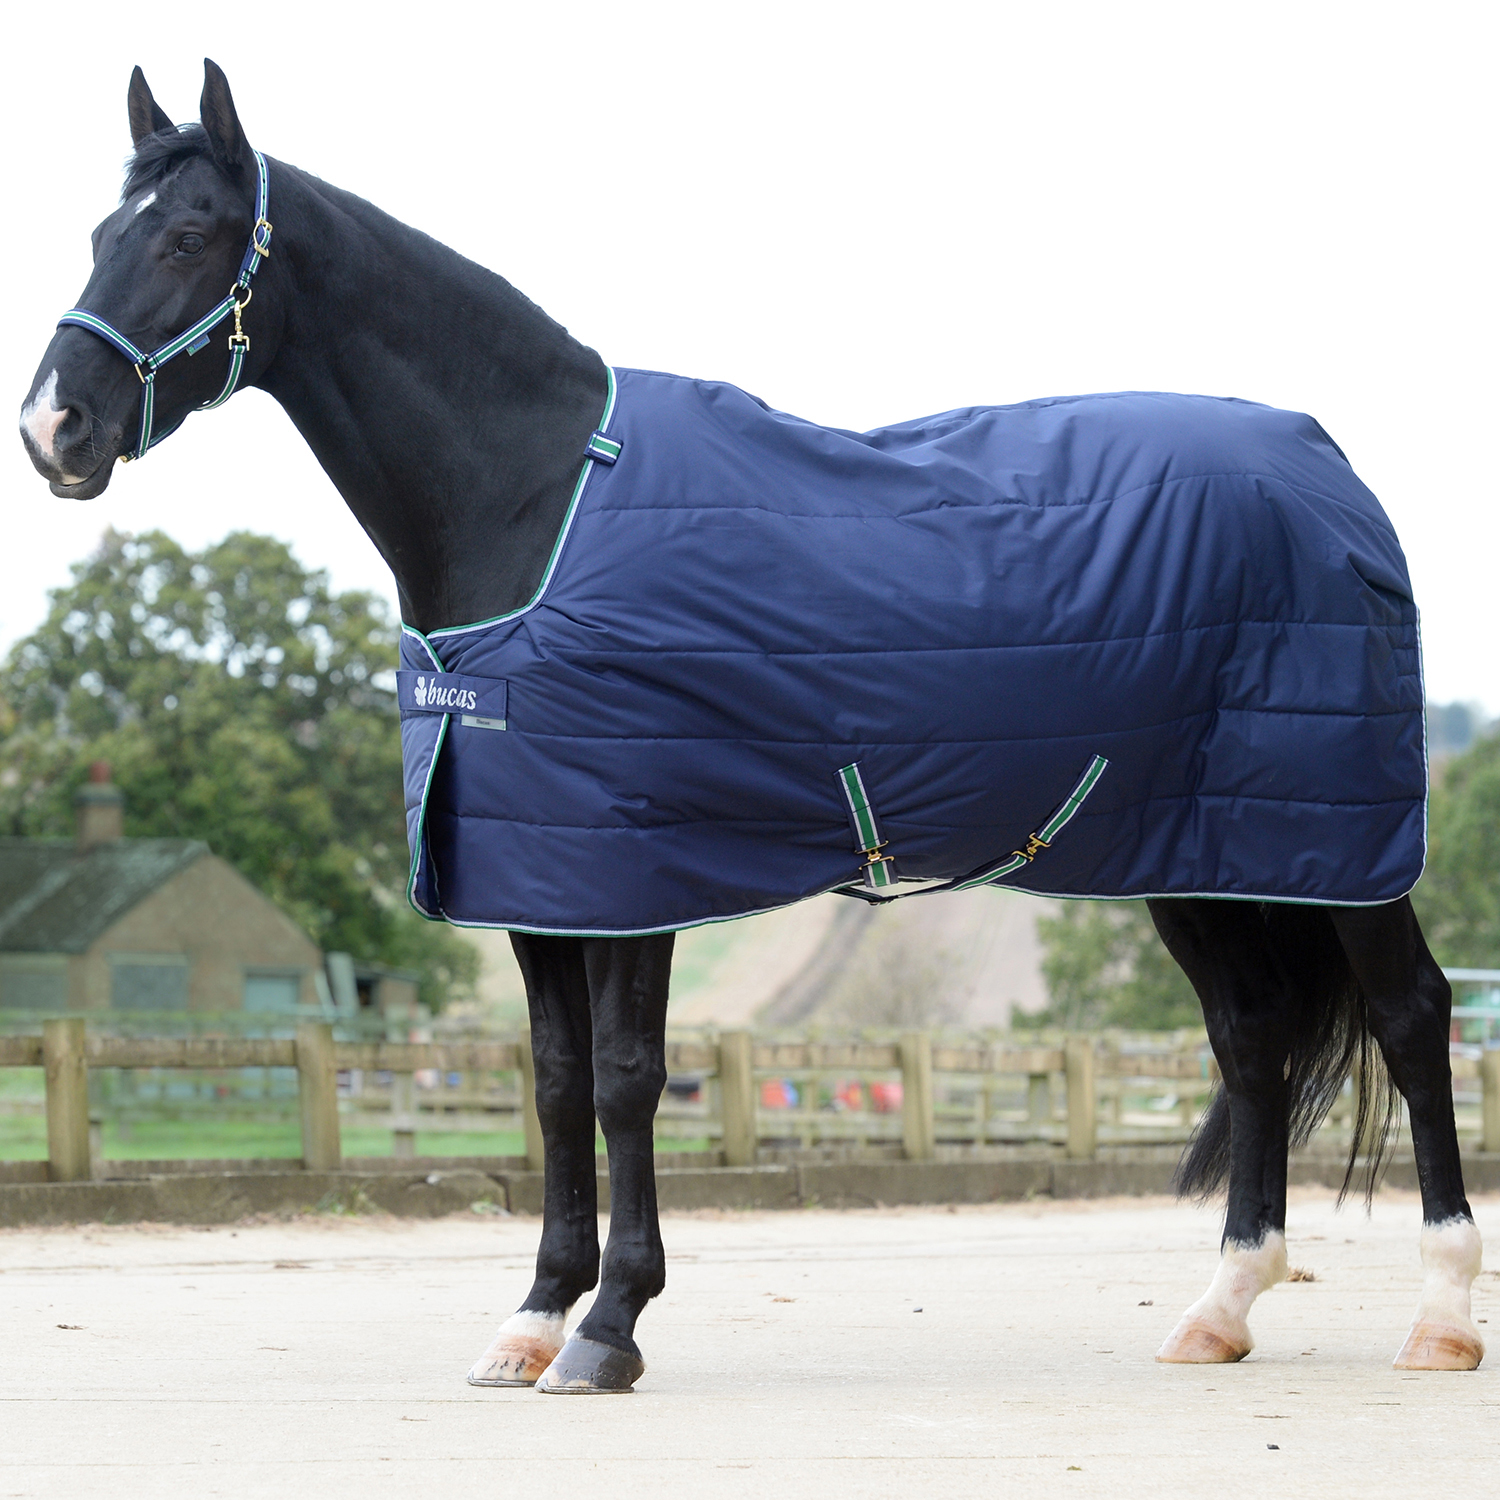 Bucas Quilt 300 Stay Dry Uni Horse